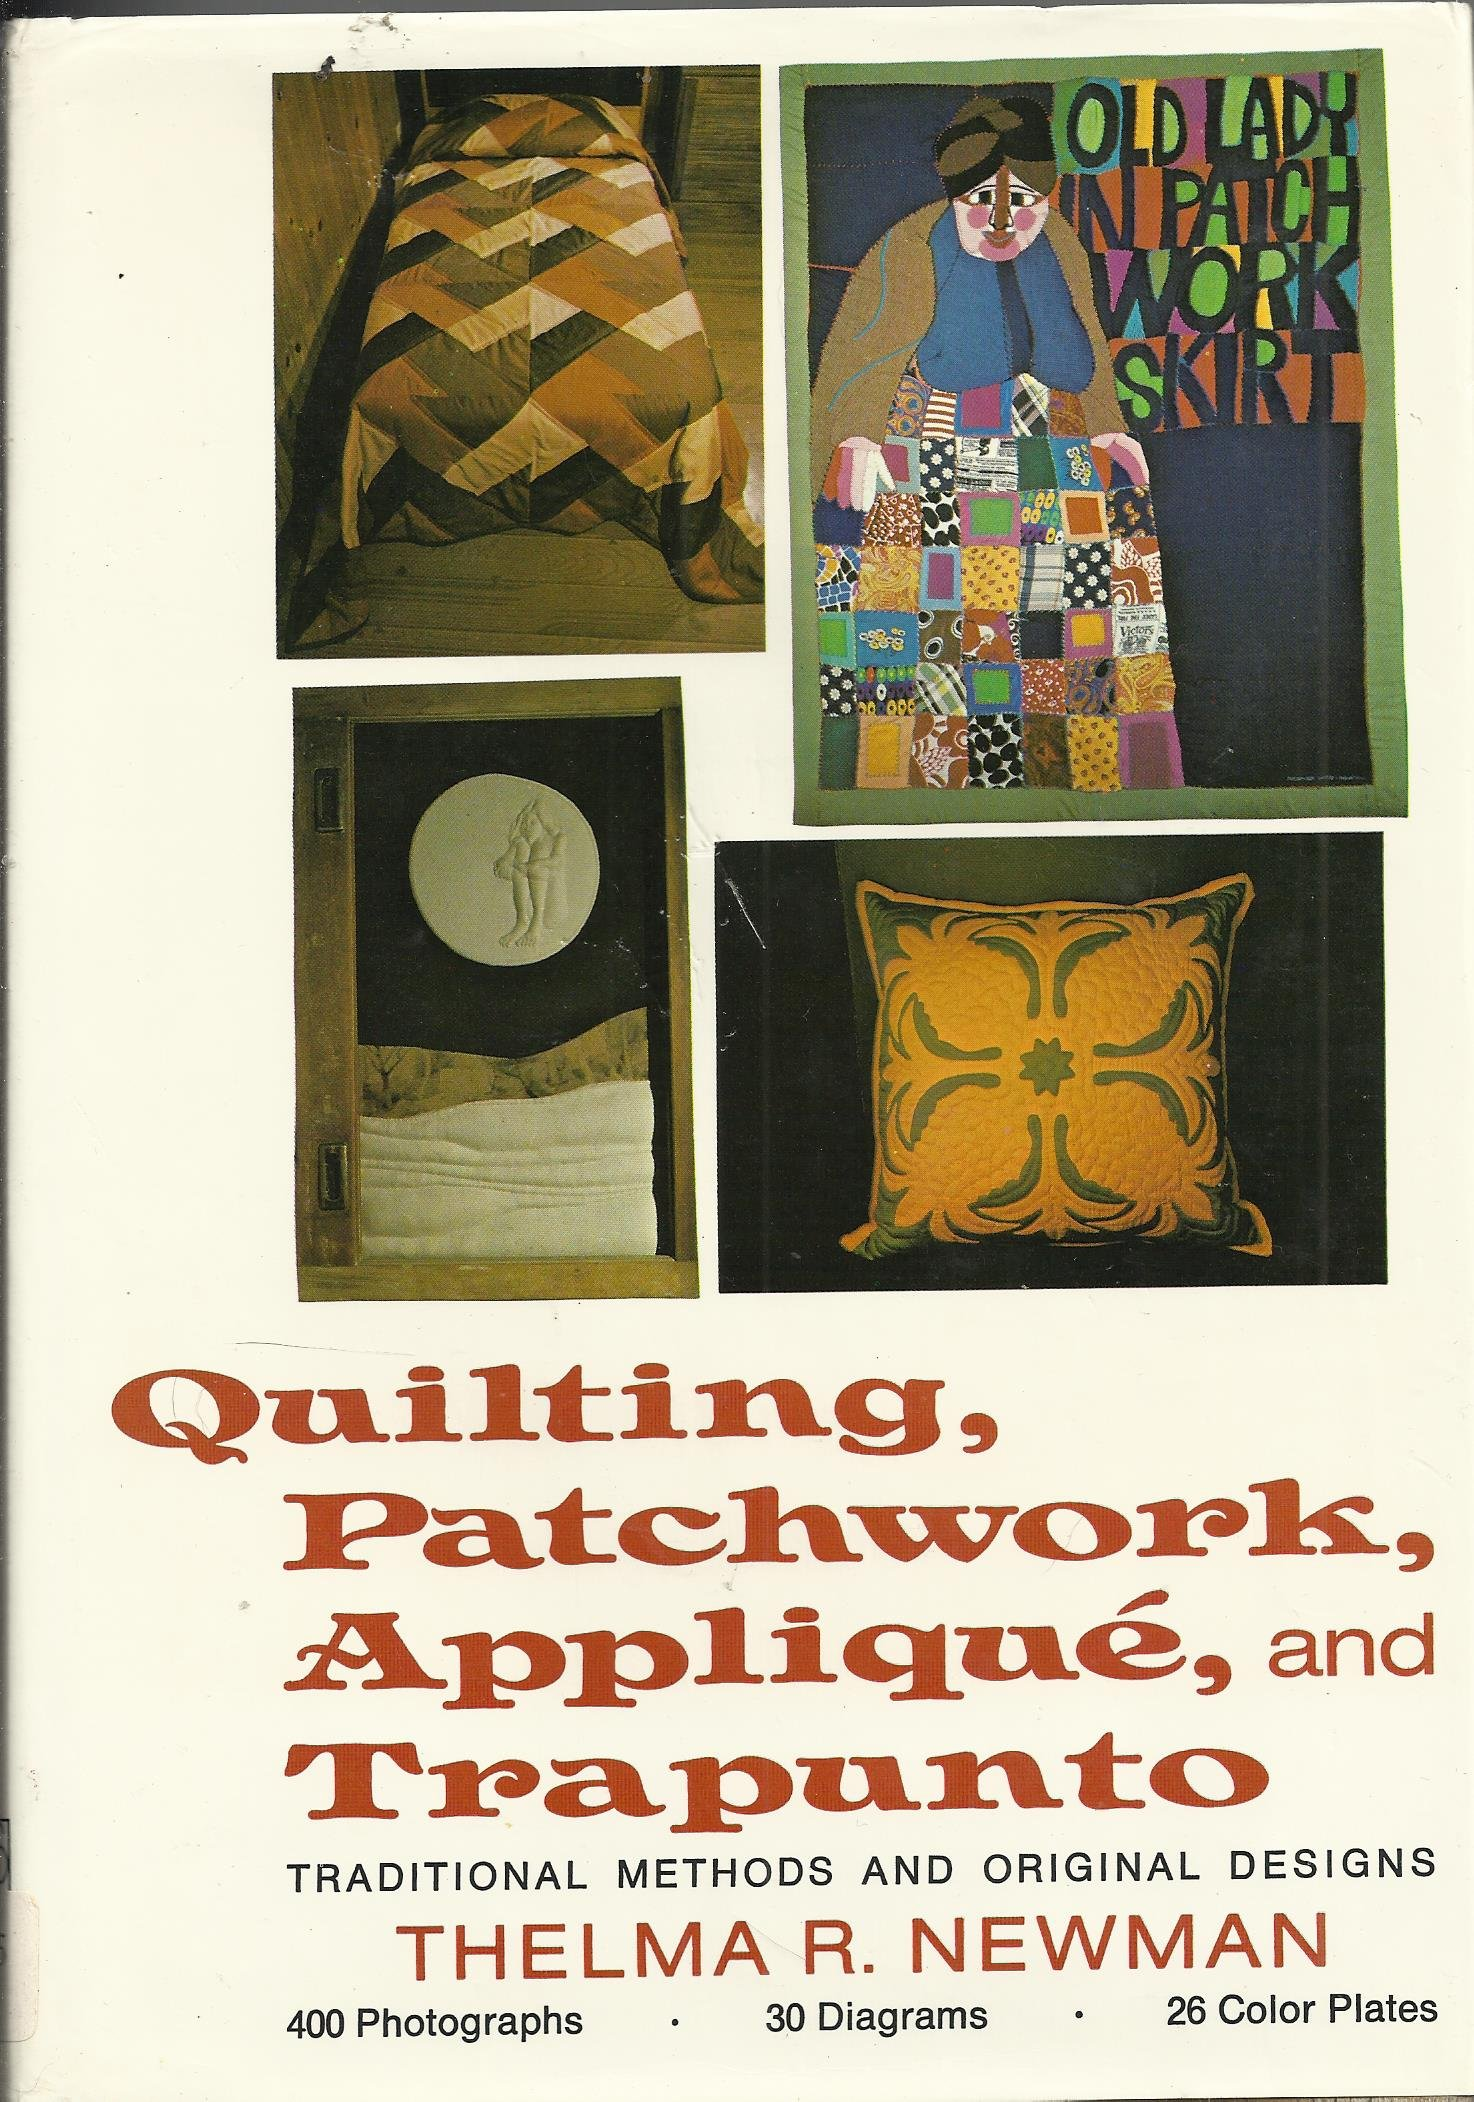 Quilting, Patchwork, Applique, and Trapunto: Traditional Methods and Original Designs